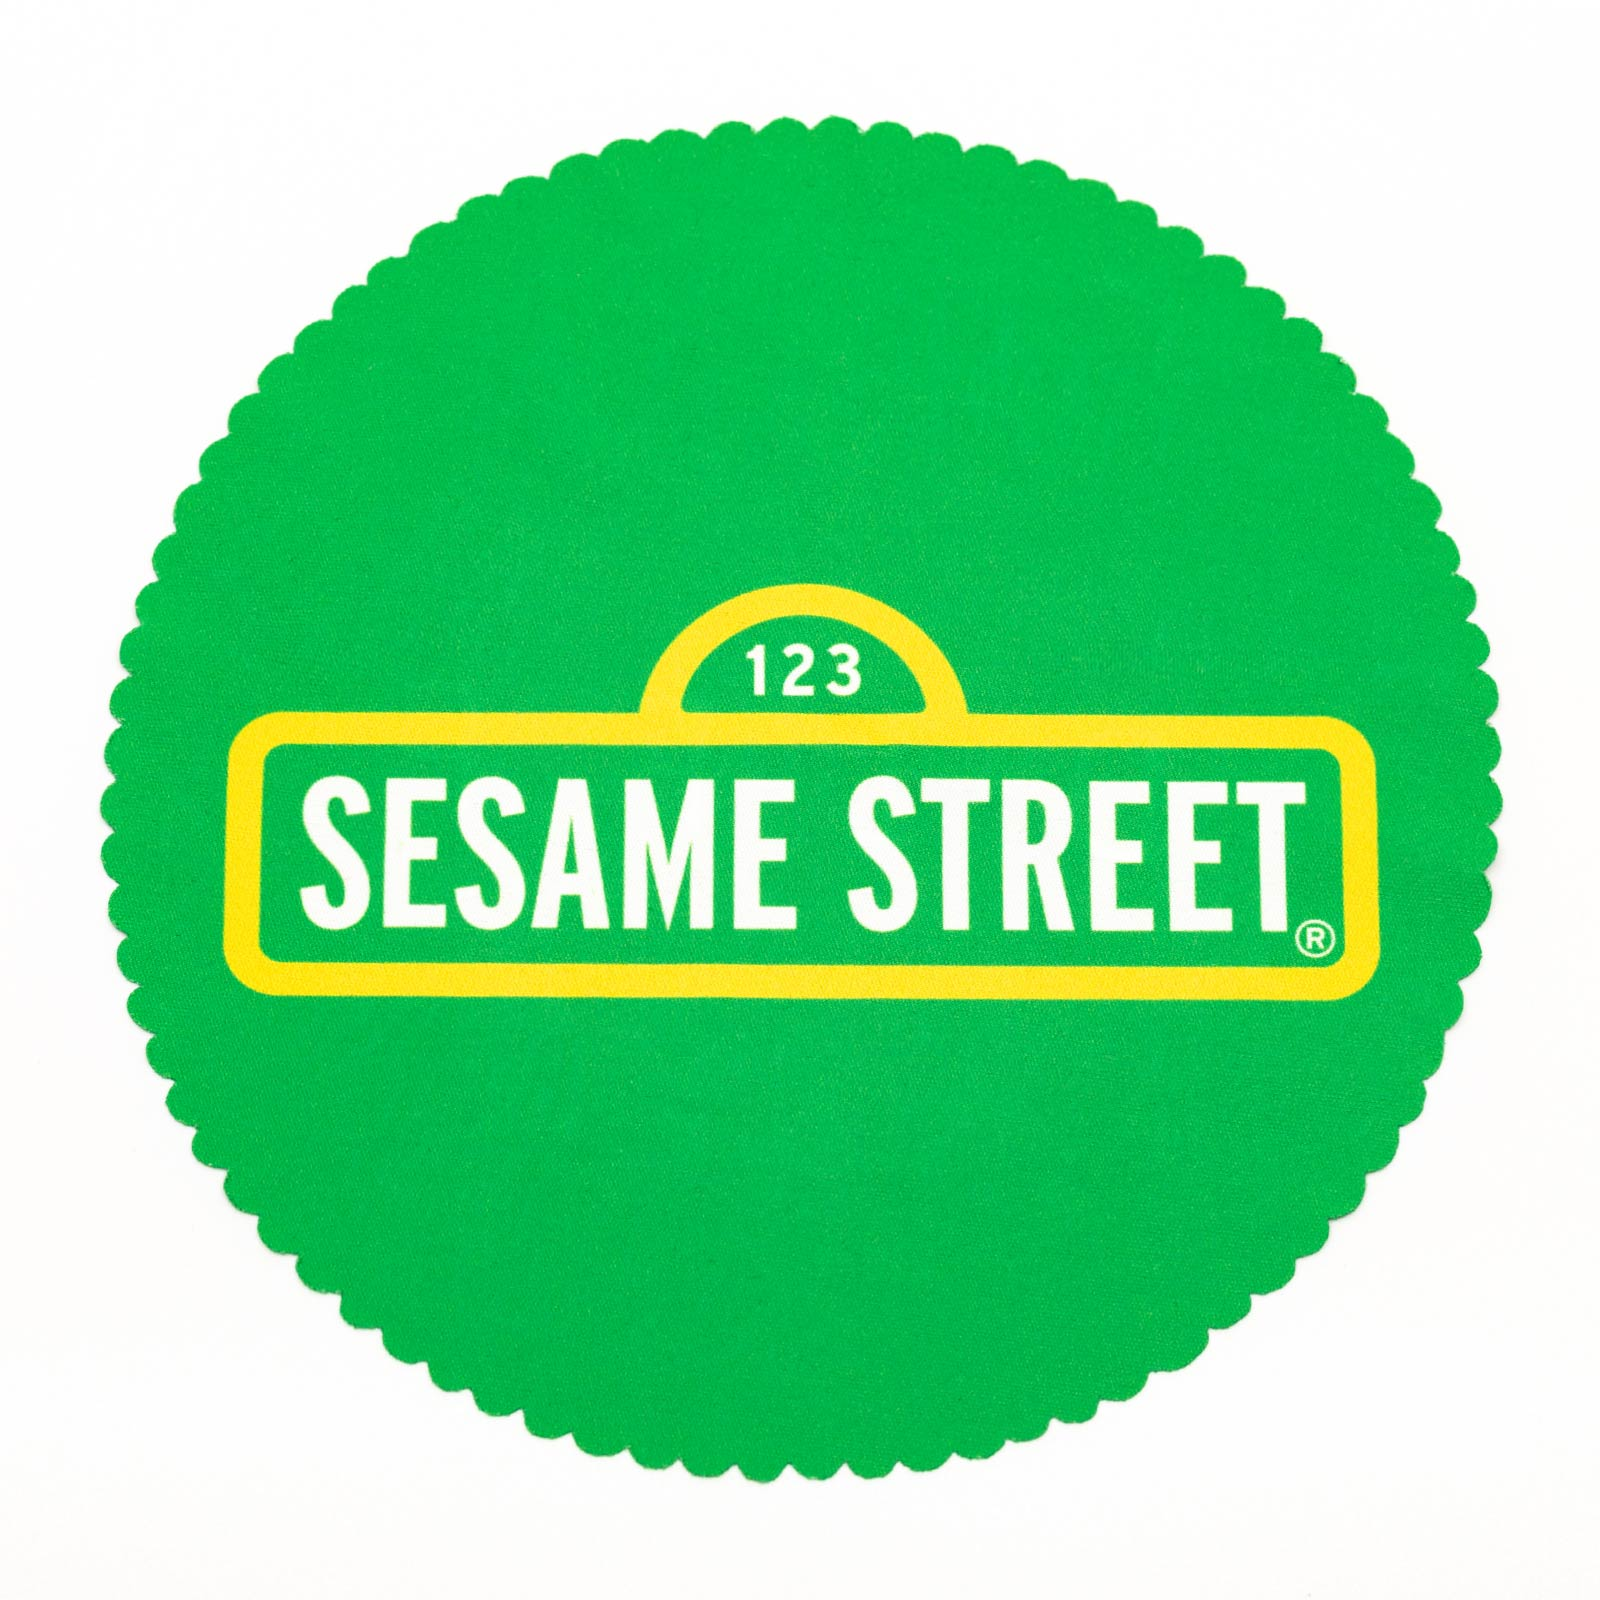 SESAME STREET - WESTON + COOKIE CYAN + BLUE LIGHT TECHNOLOGY